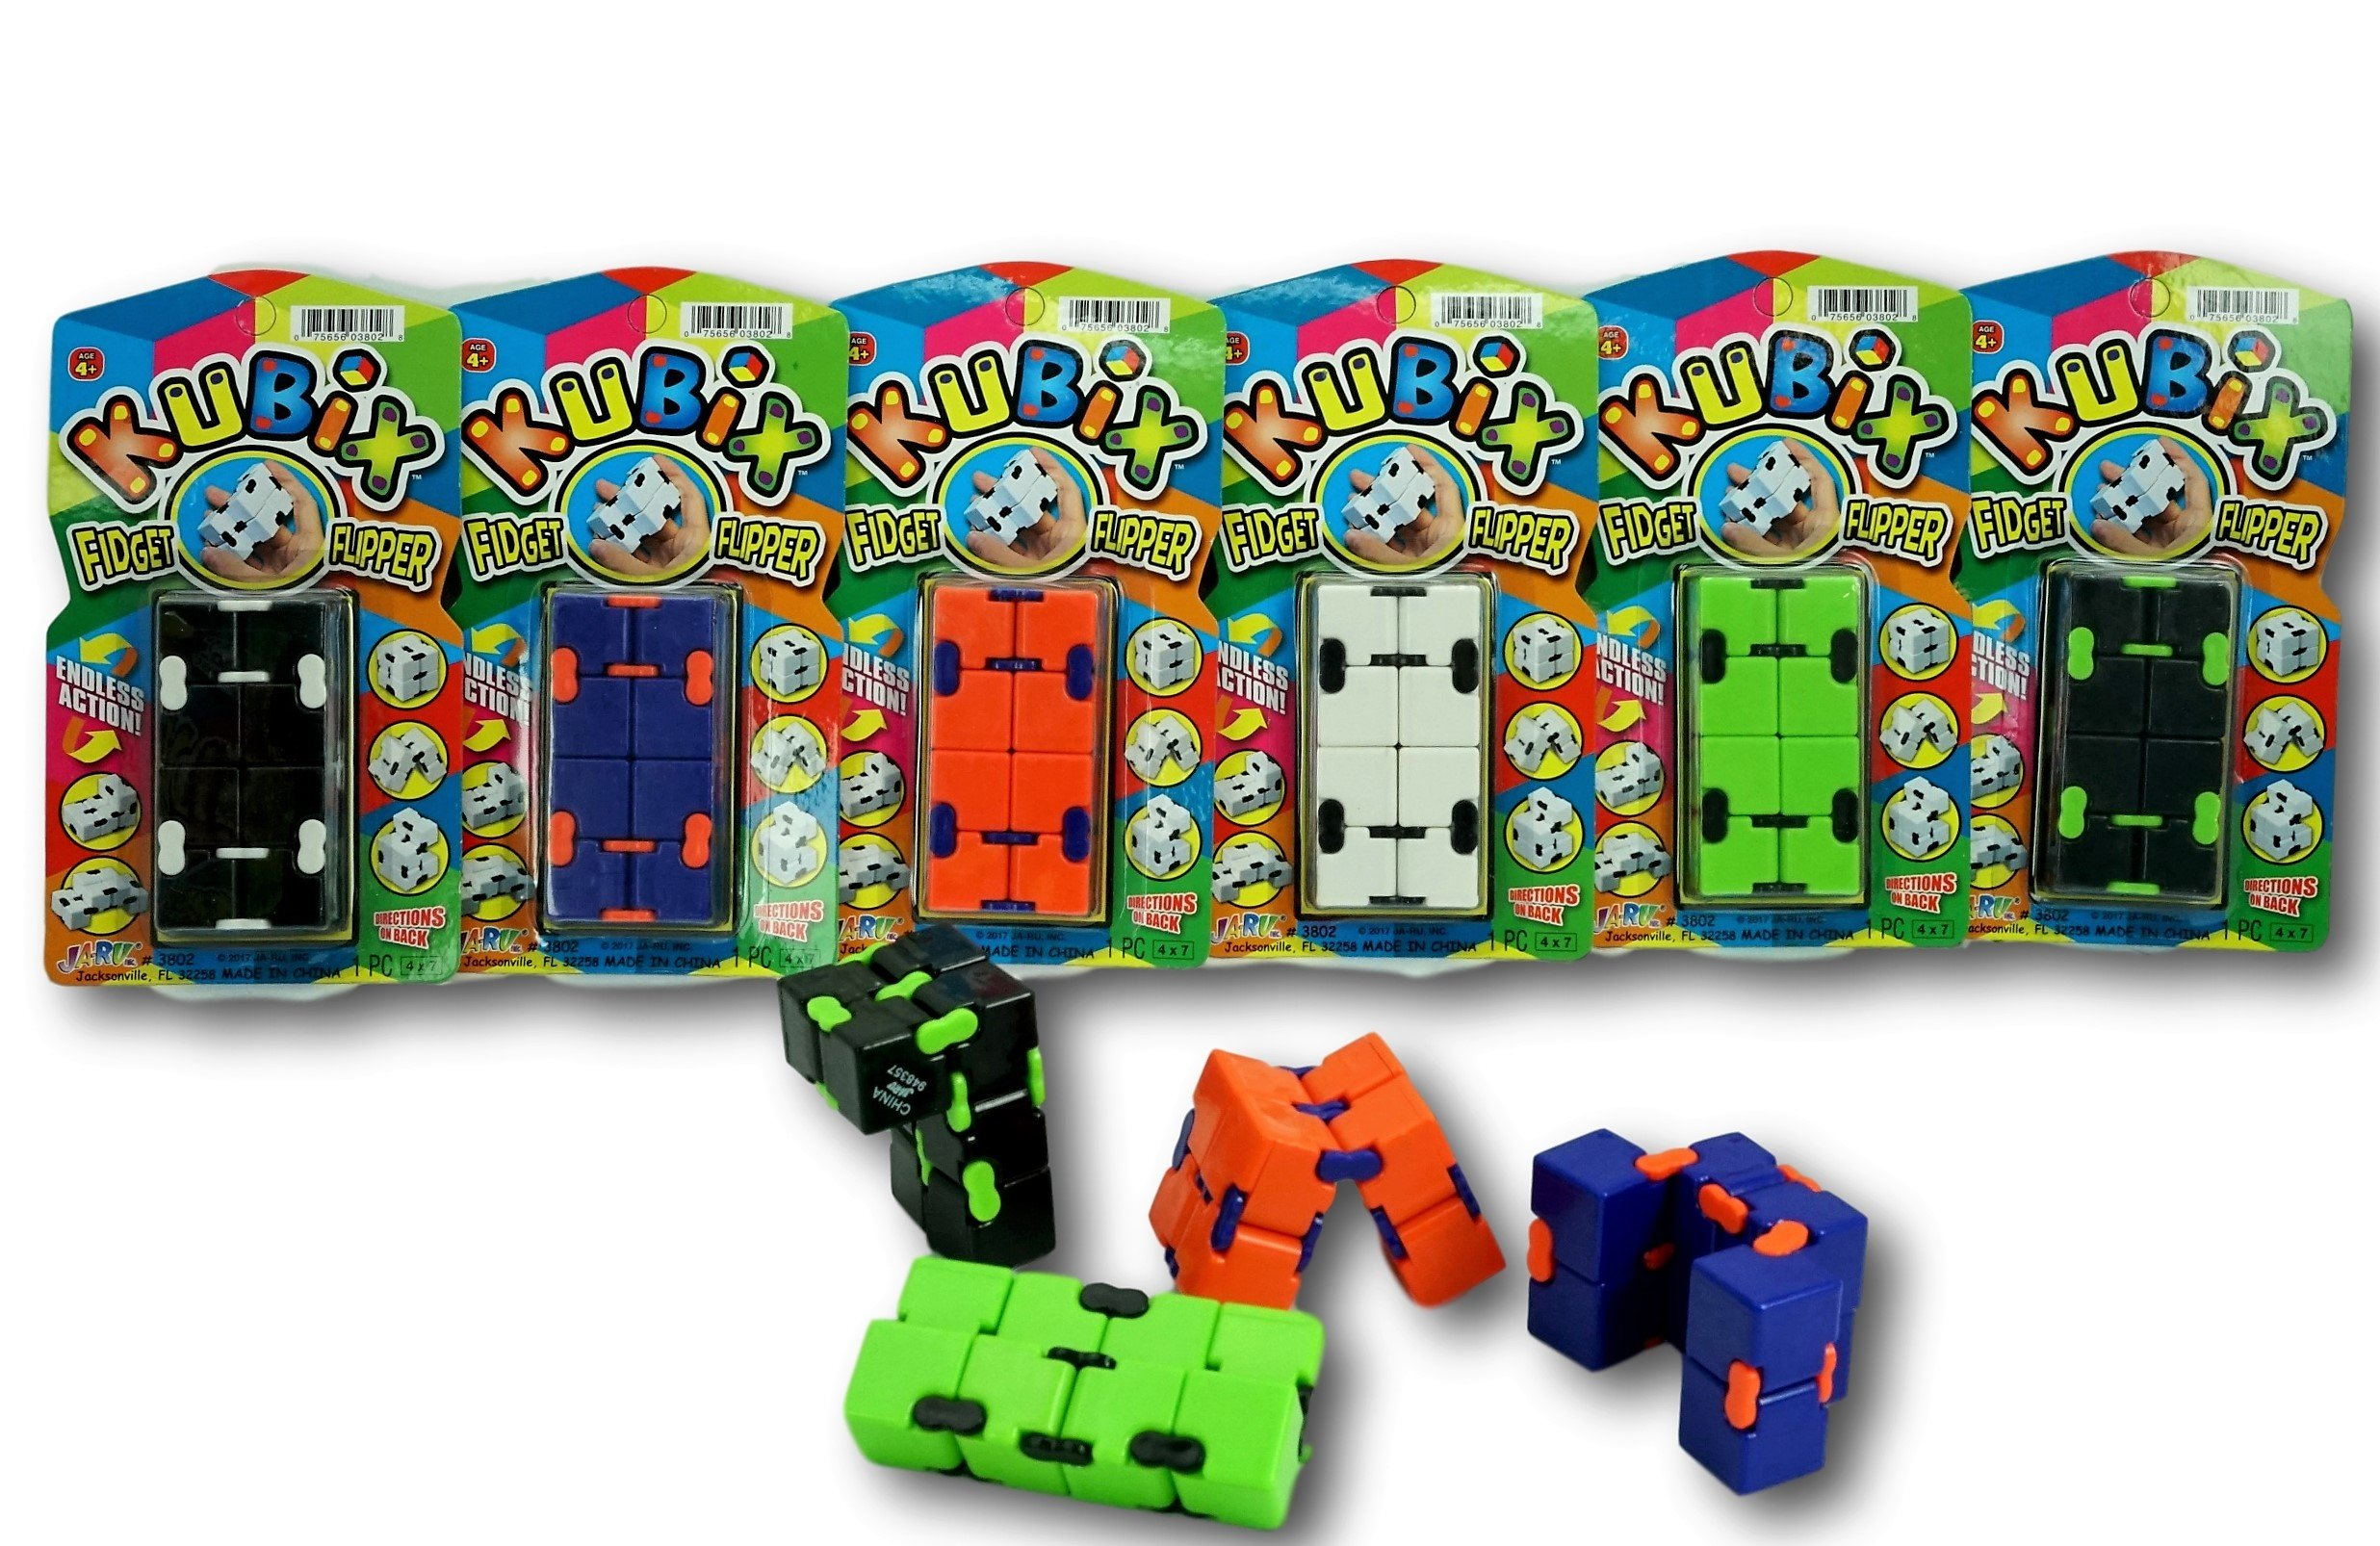 2GoodShop Kubix Speed Cube Fidget Cube Flip It Endlessly to Keep Your Fingers Busy and Your Mind Focused Pack of 24   Item #3802 by 2GoodShop (Image #3)